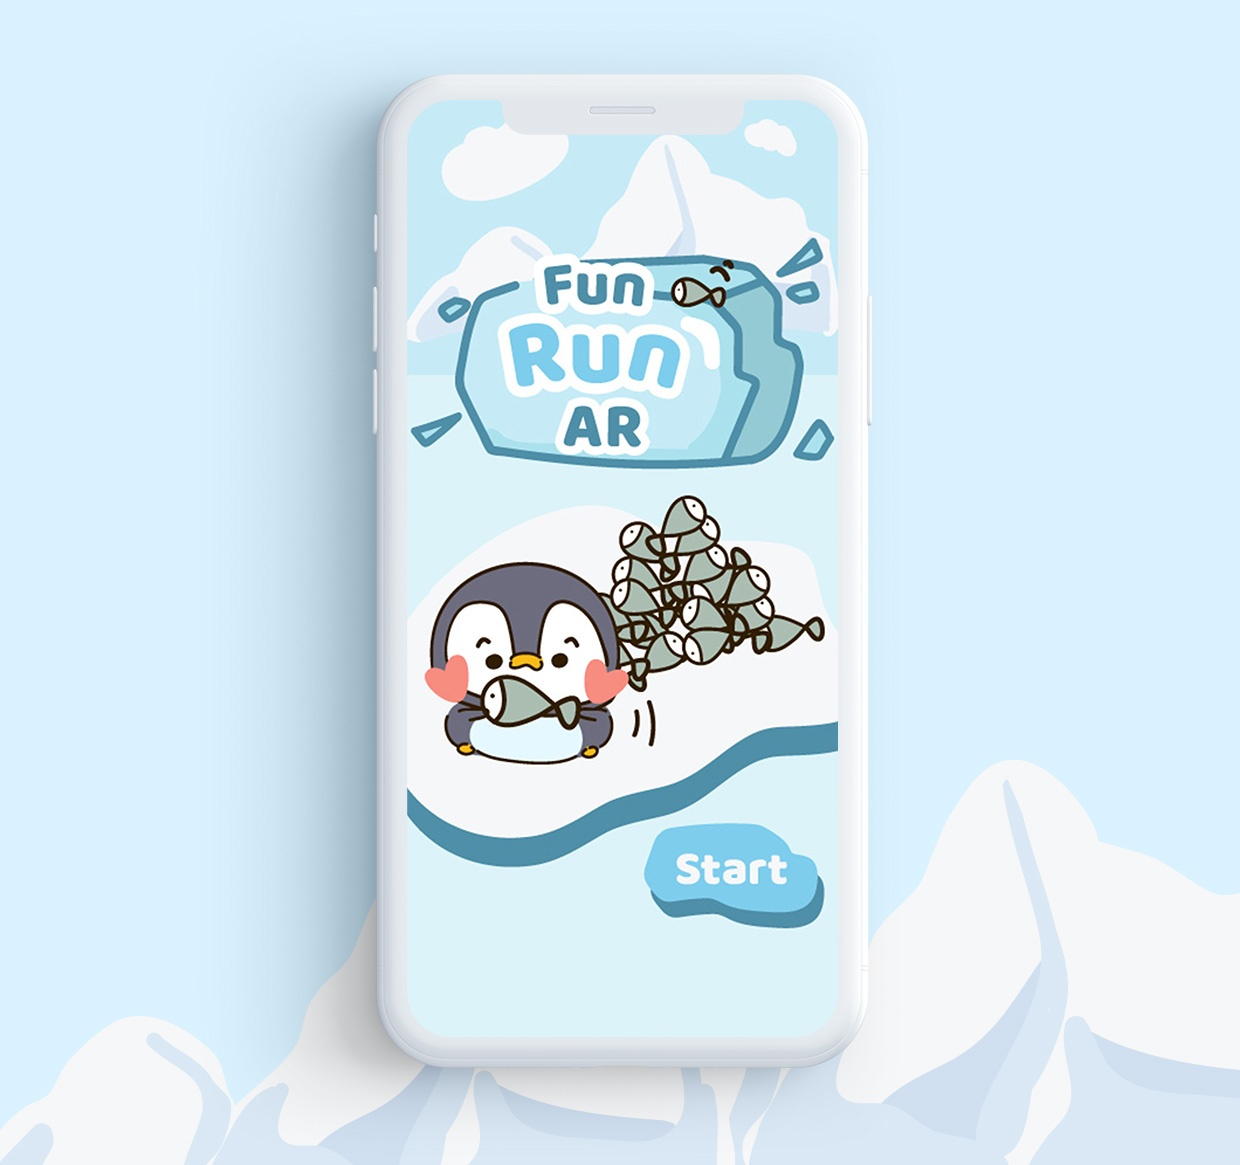 Fun Run AR